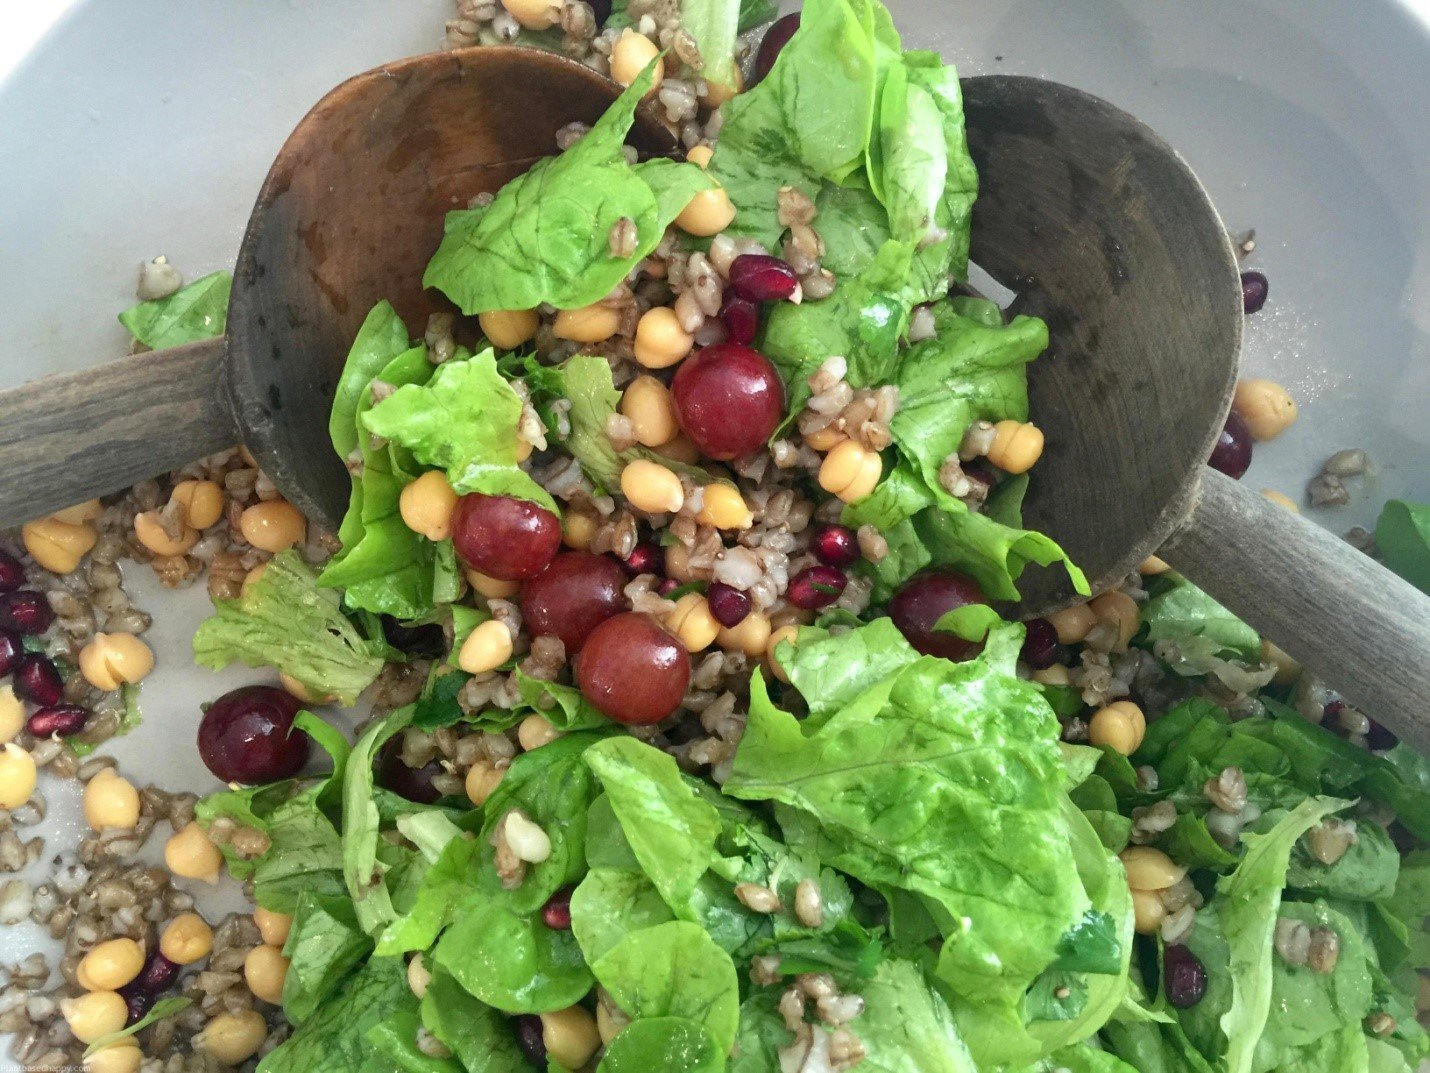 A spatula mixing Lettuce, grapes, chickpeas